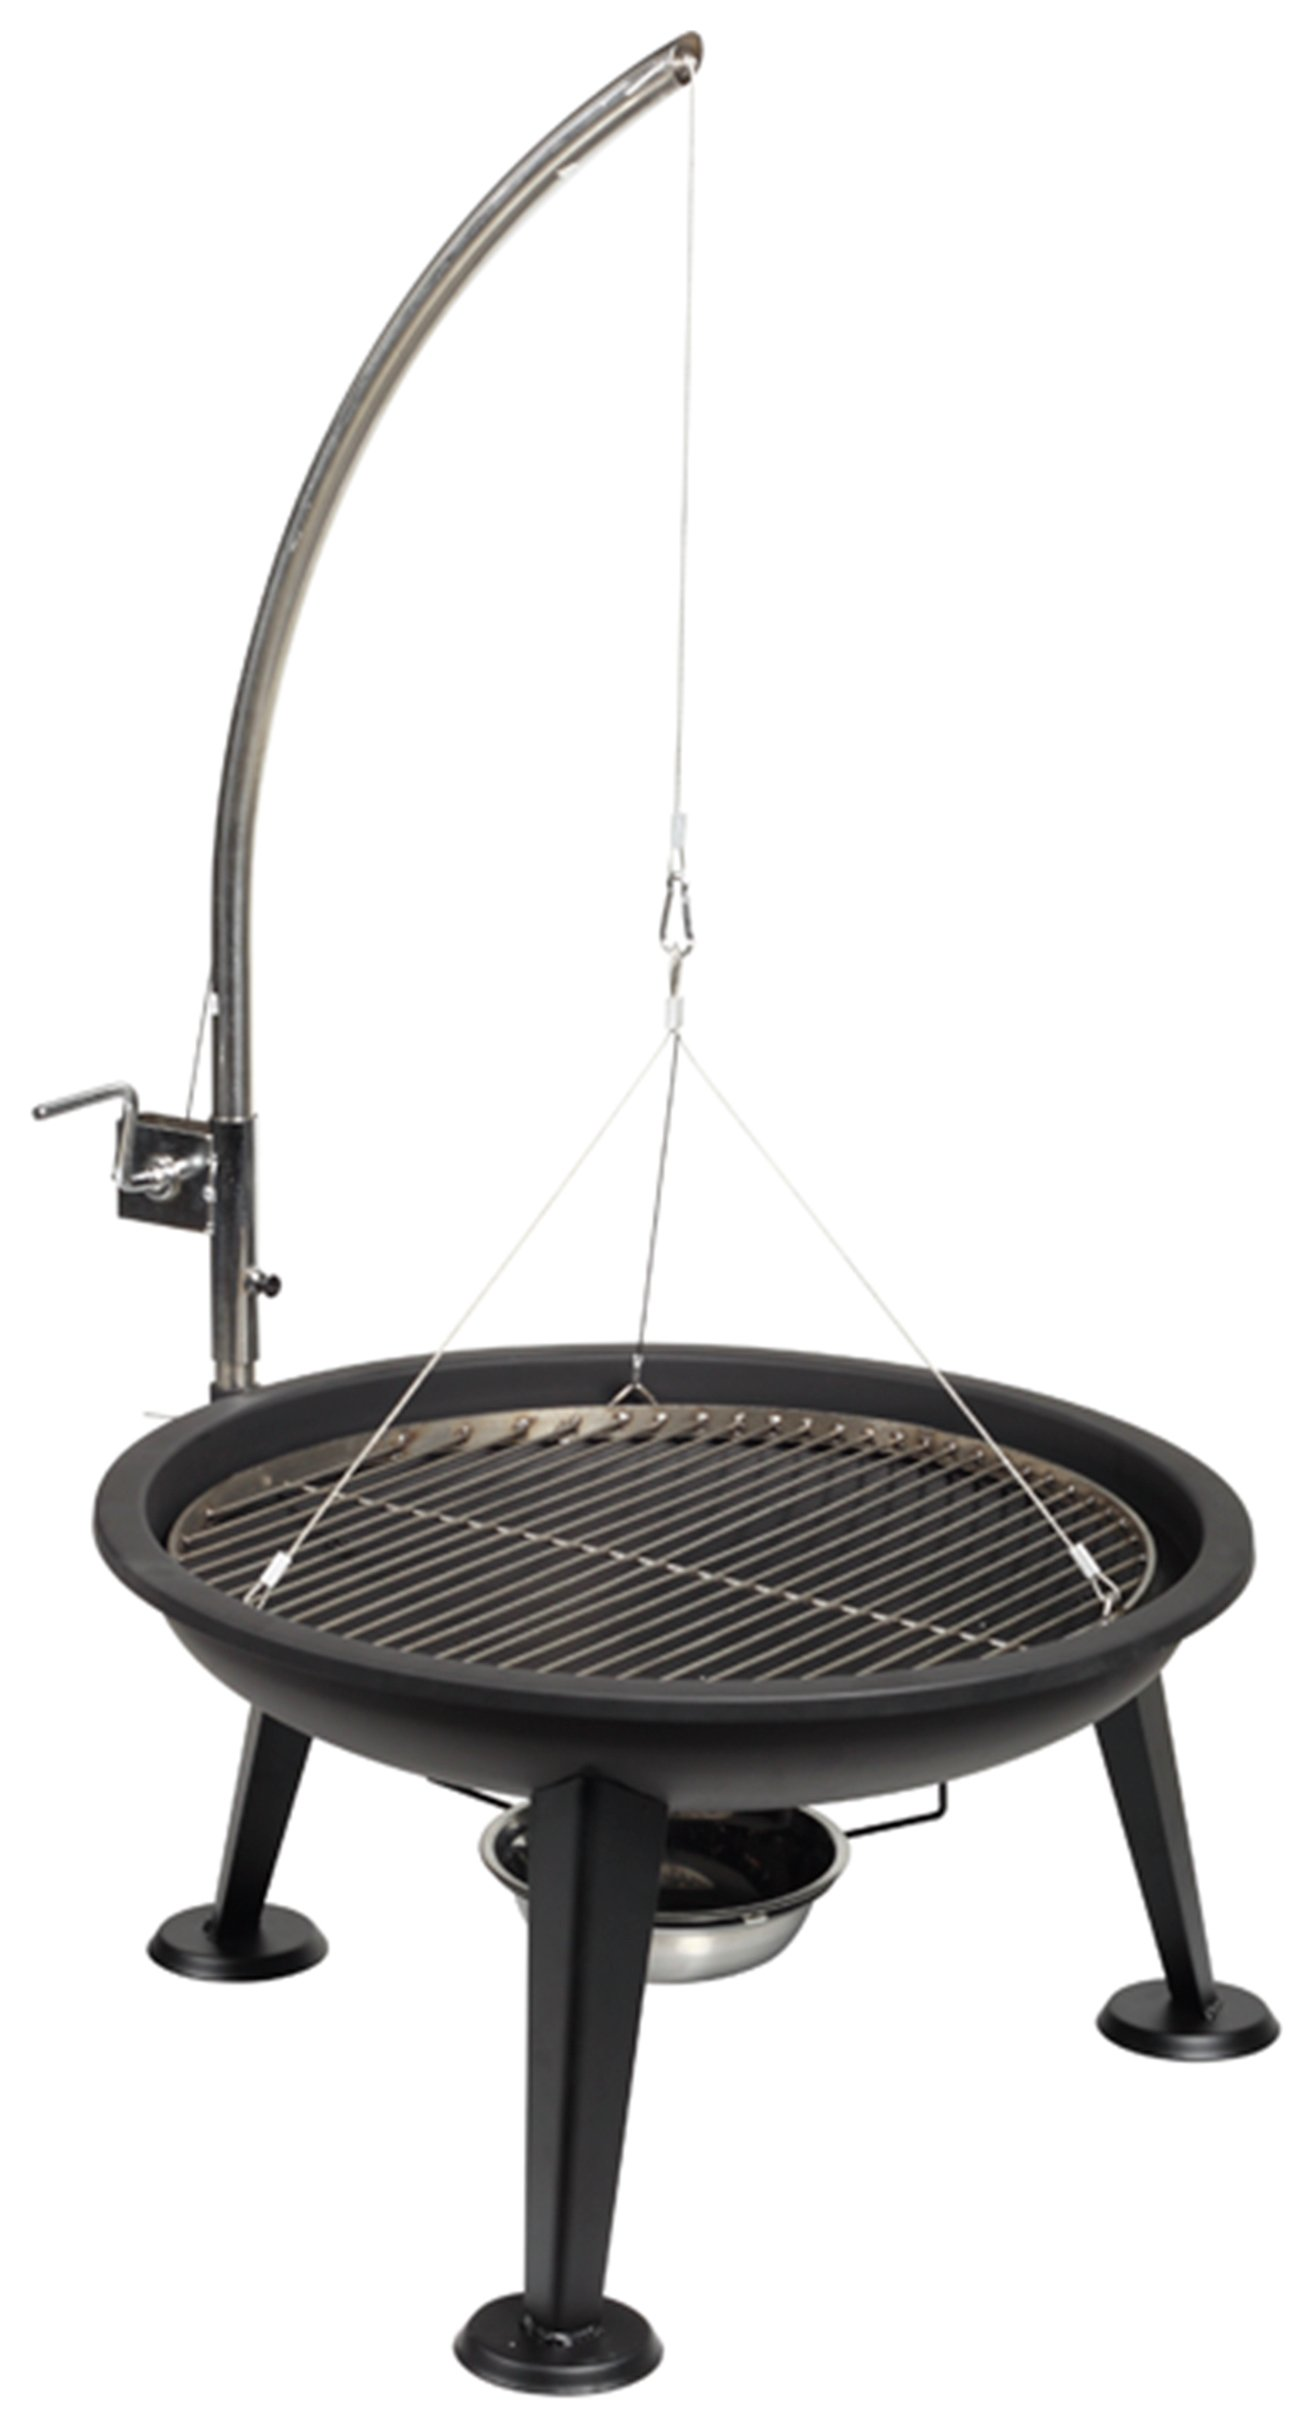 firefriend stainless steel charcoal bbq fire pit review. Black Bedroom Furniture Sets. Home Design Ideas